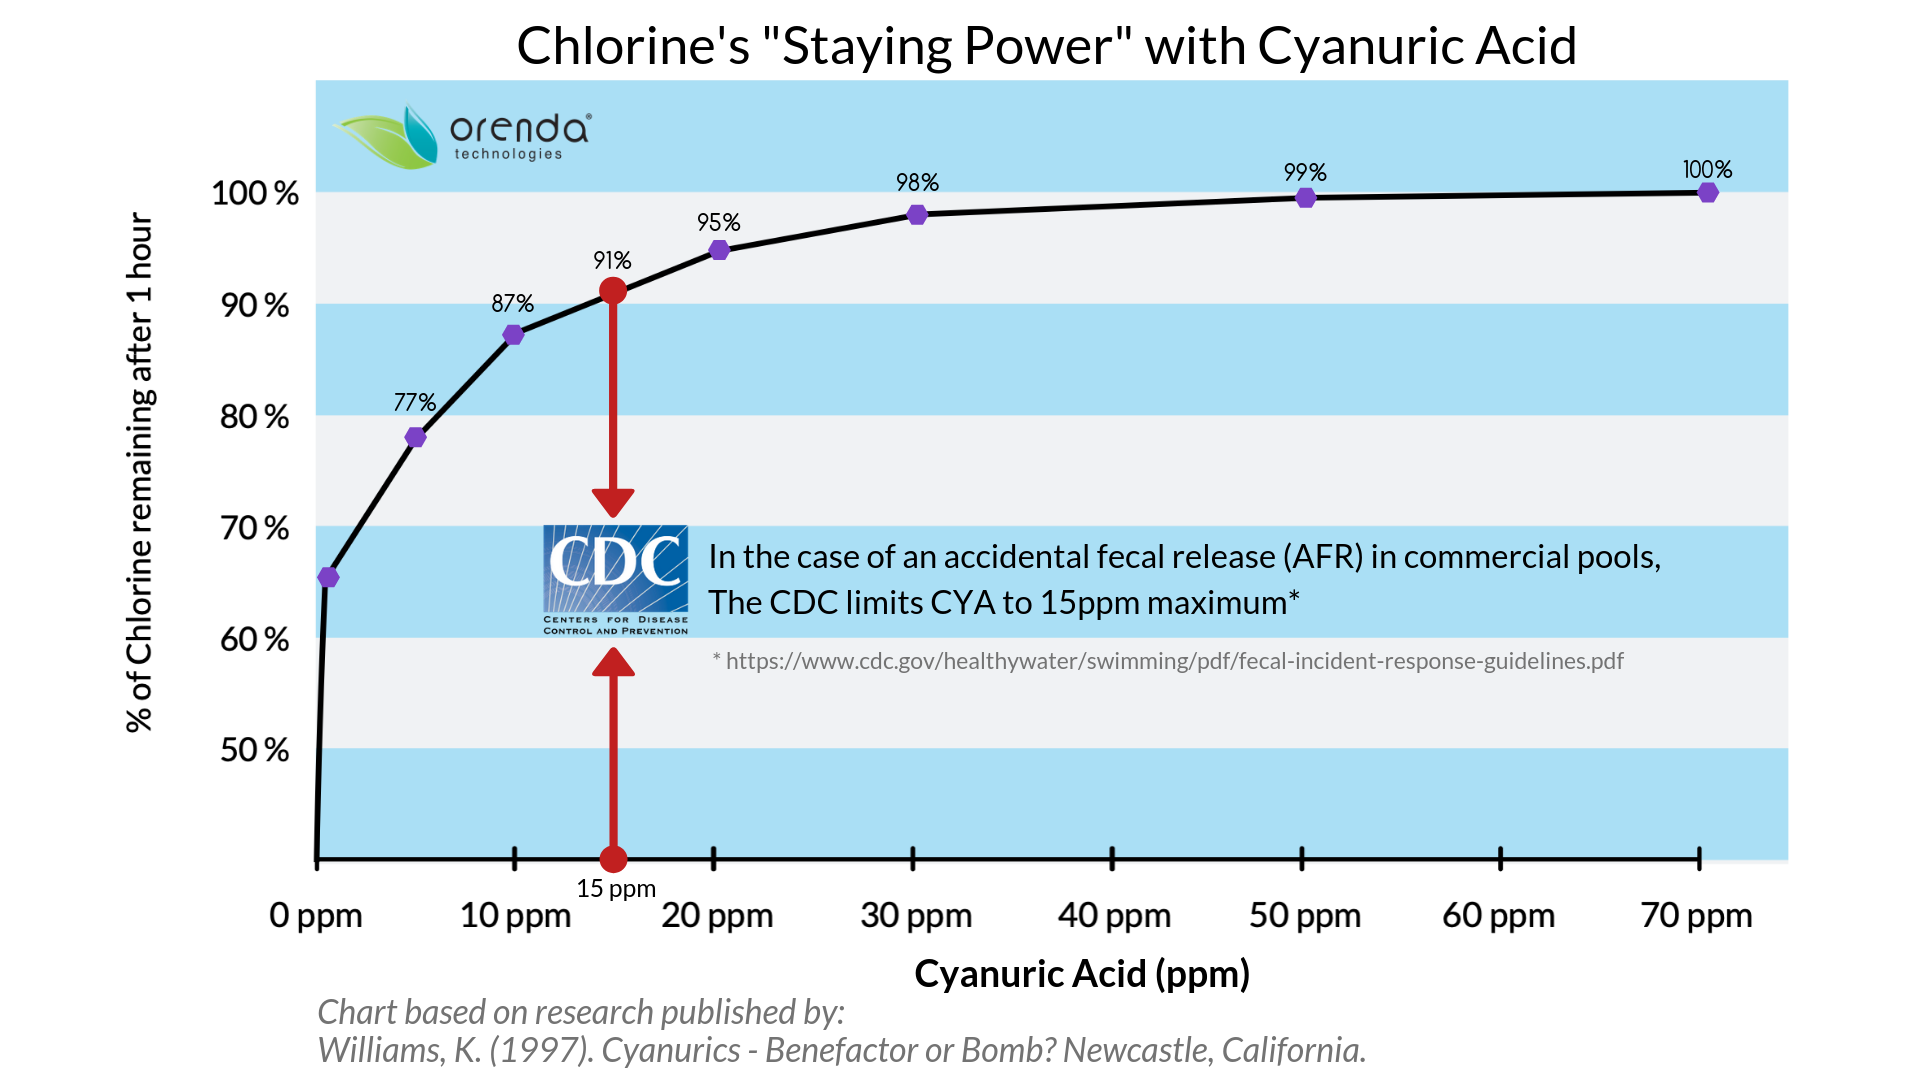 Chlorine Staying Power